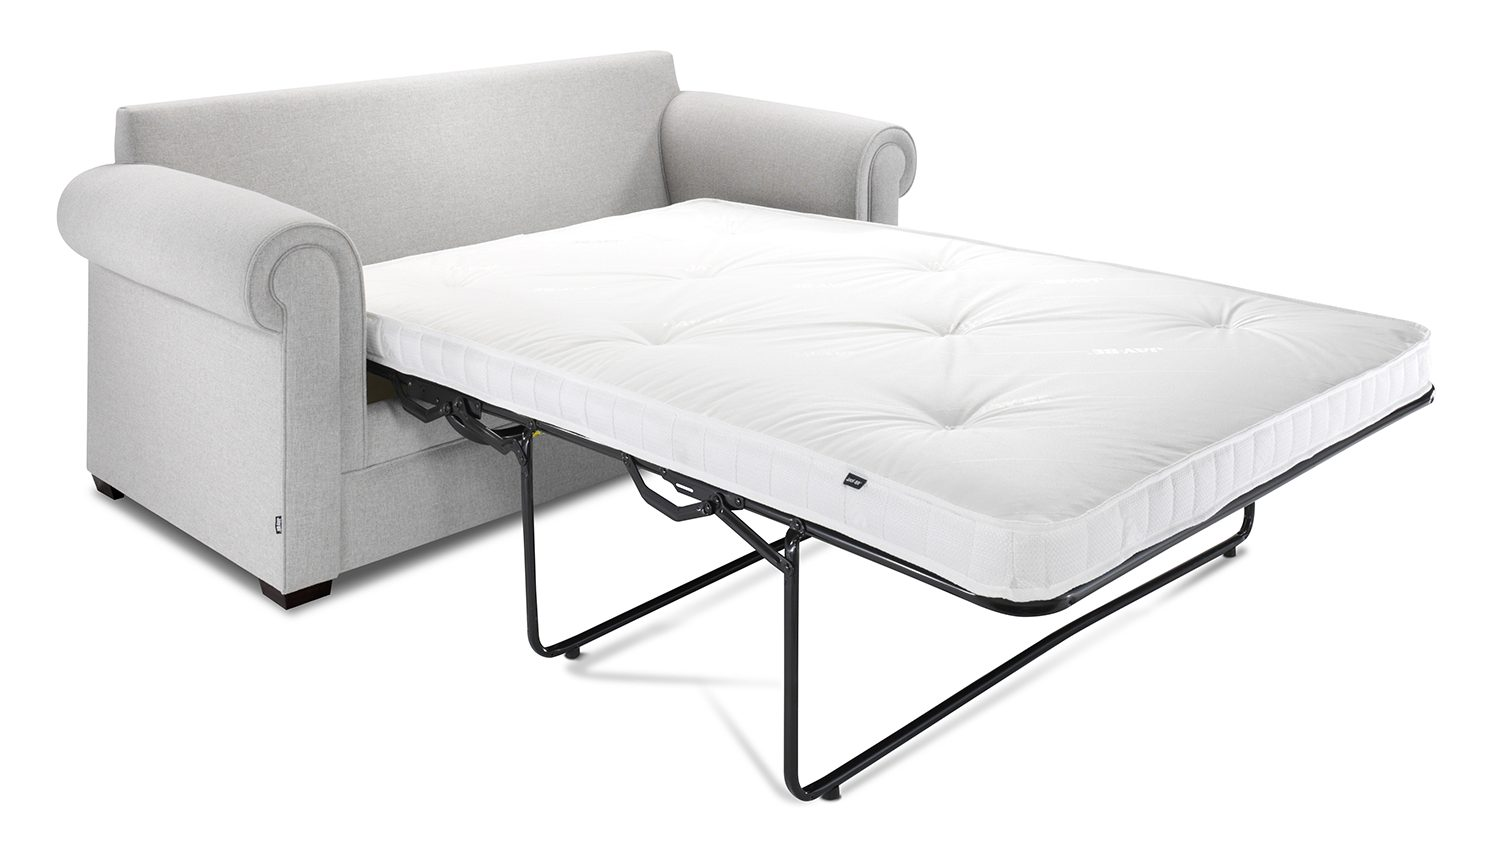 Jay-Be Sofa Beds Classic Pocket Sprung Sofa Bed